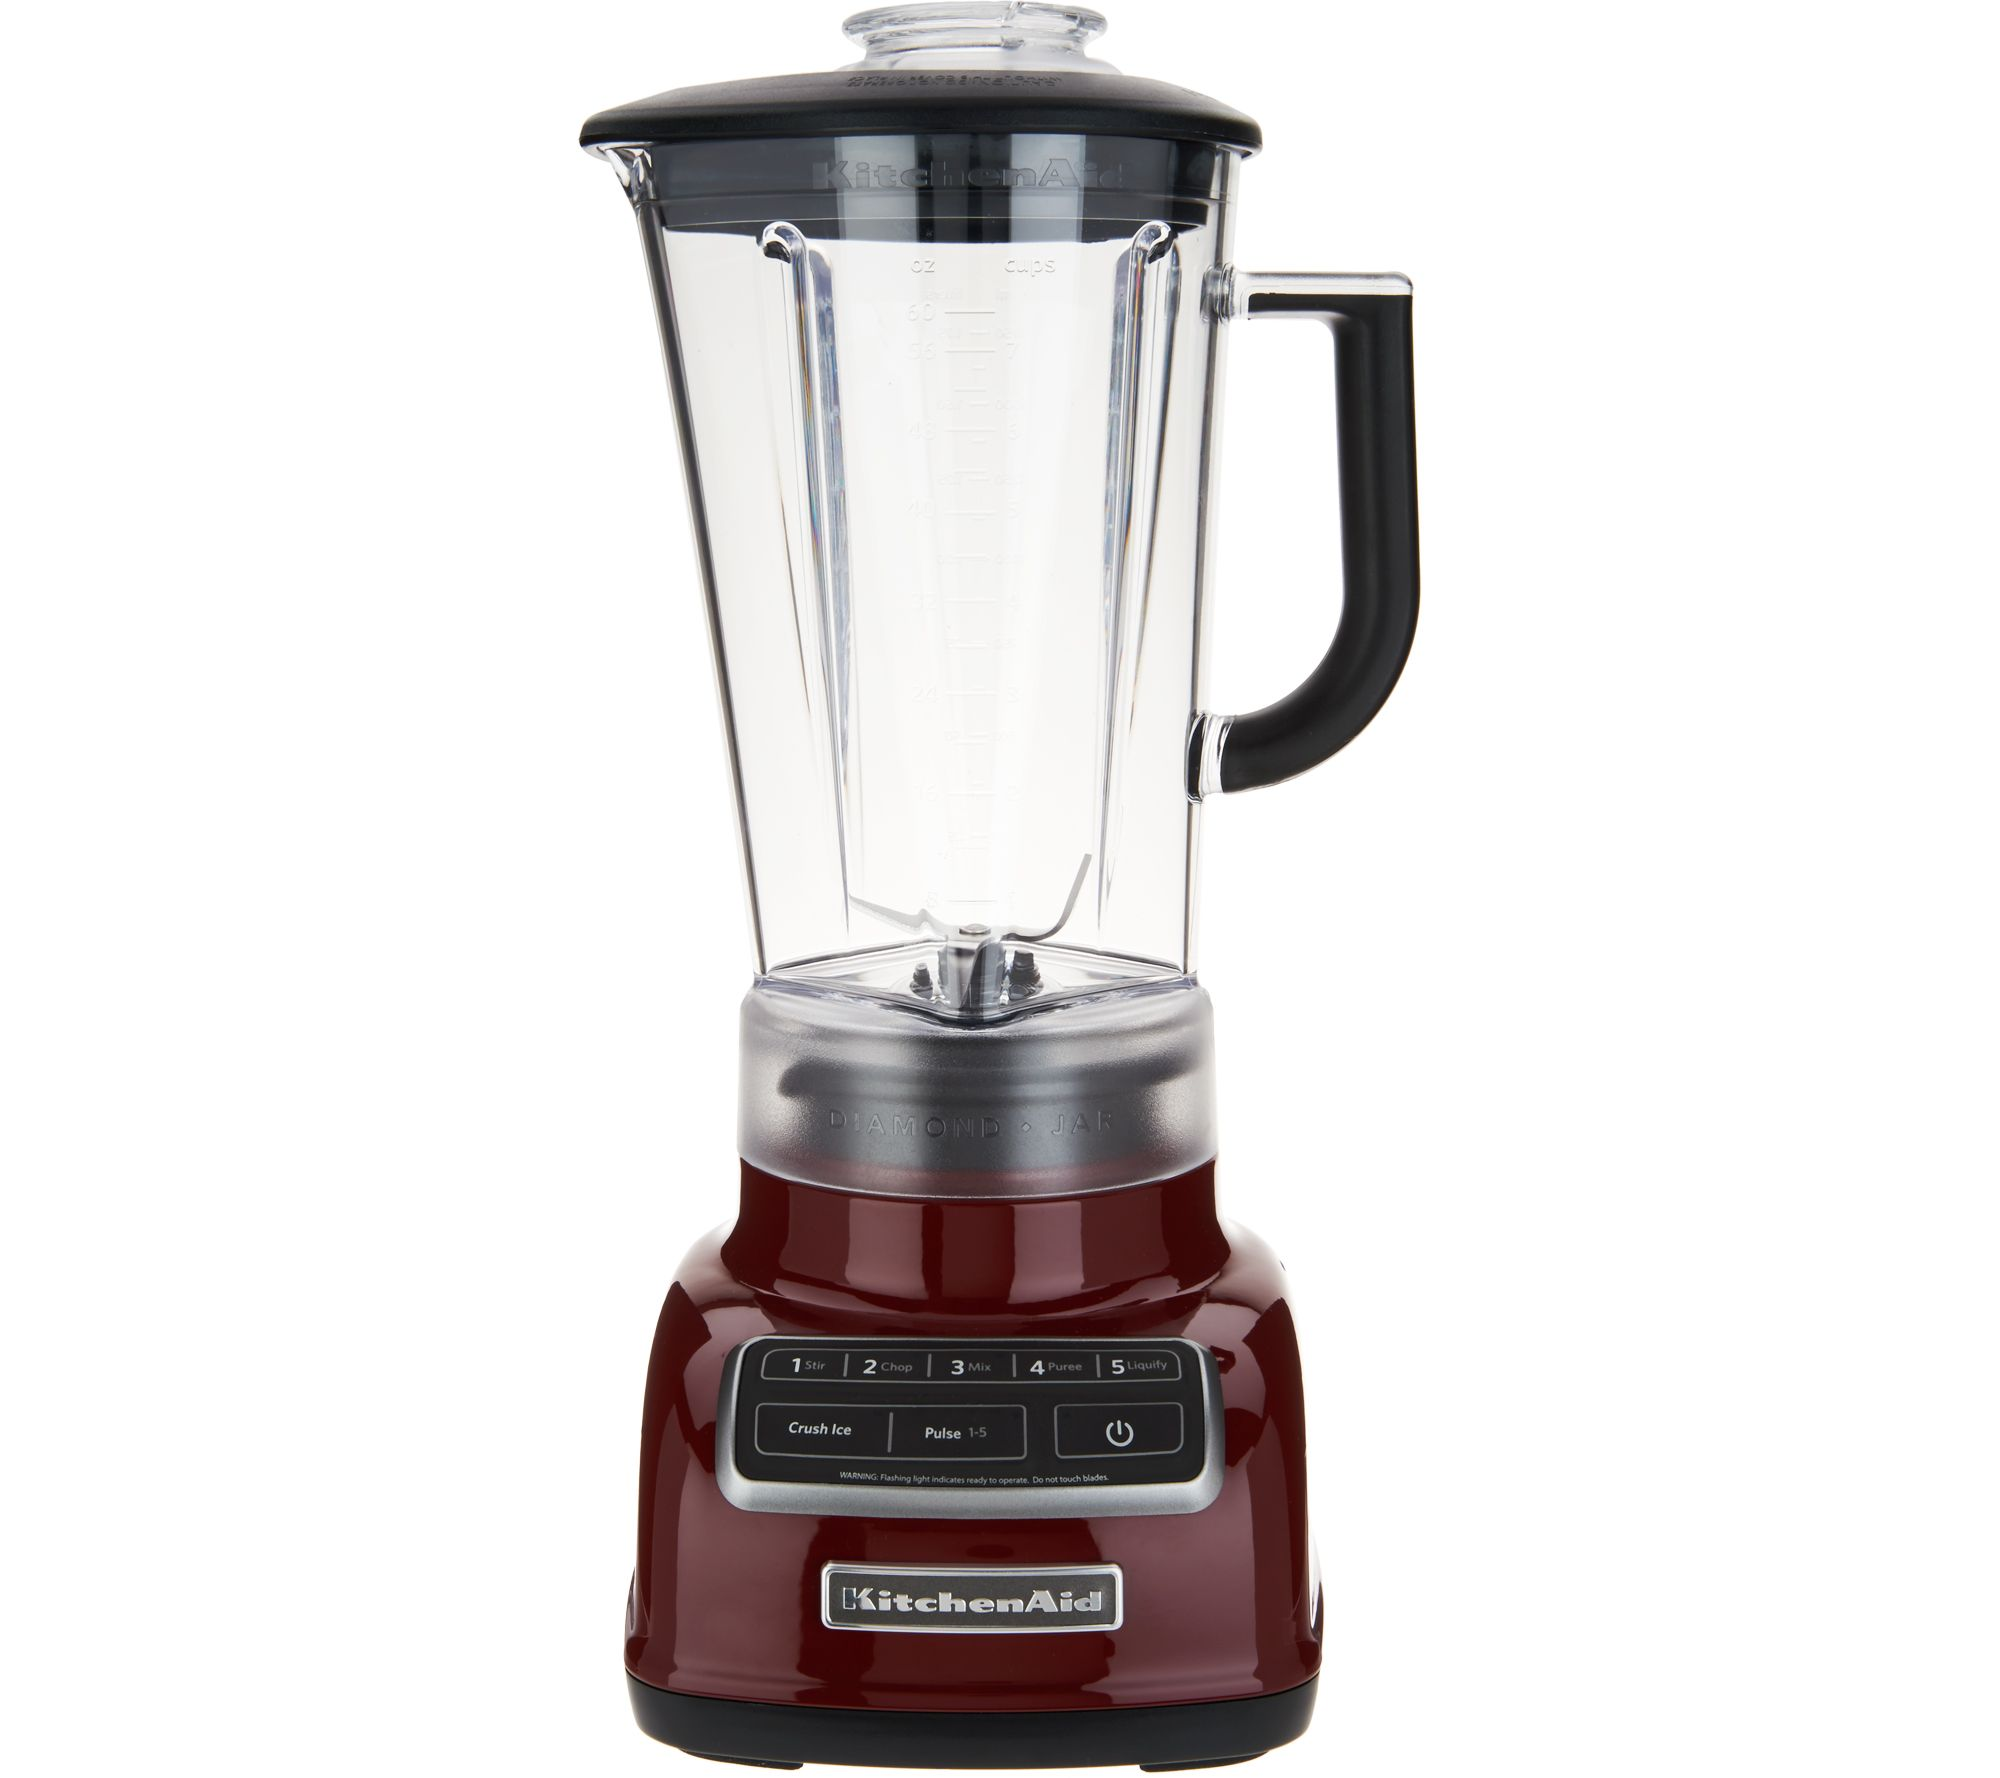 kitchenaid ultra power blender. kitchenaid 5 in 1 premium diamond blender - k46176 kitchenaid ultra power